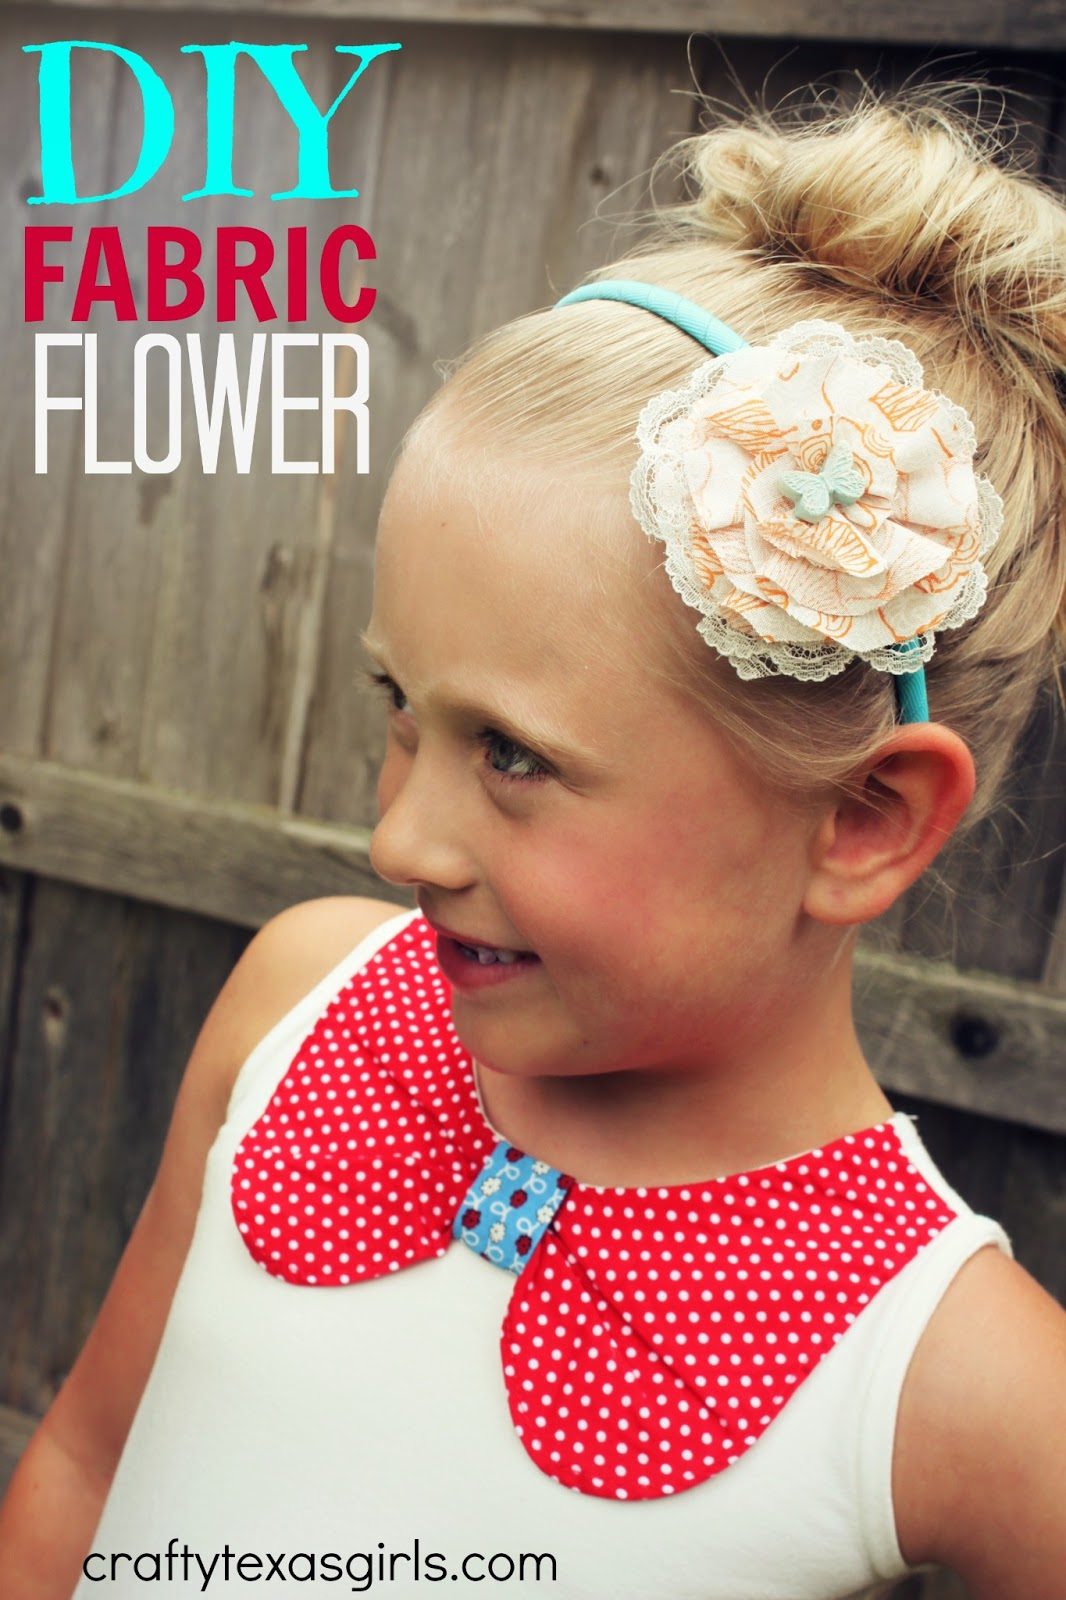 Crafty Texas Girls Crafty How To Fabric Flower Headband